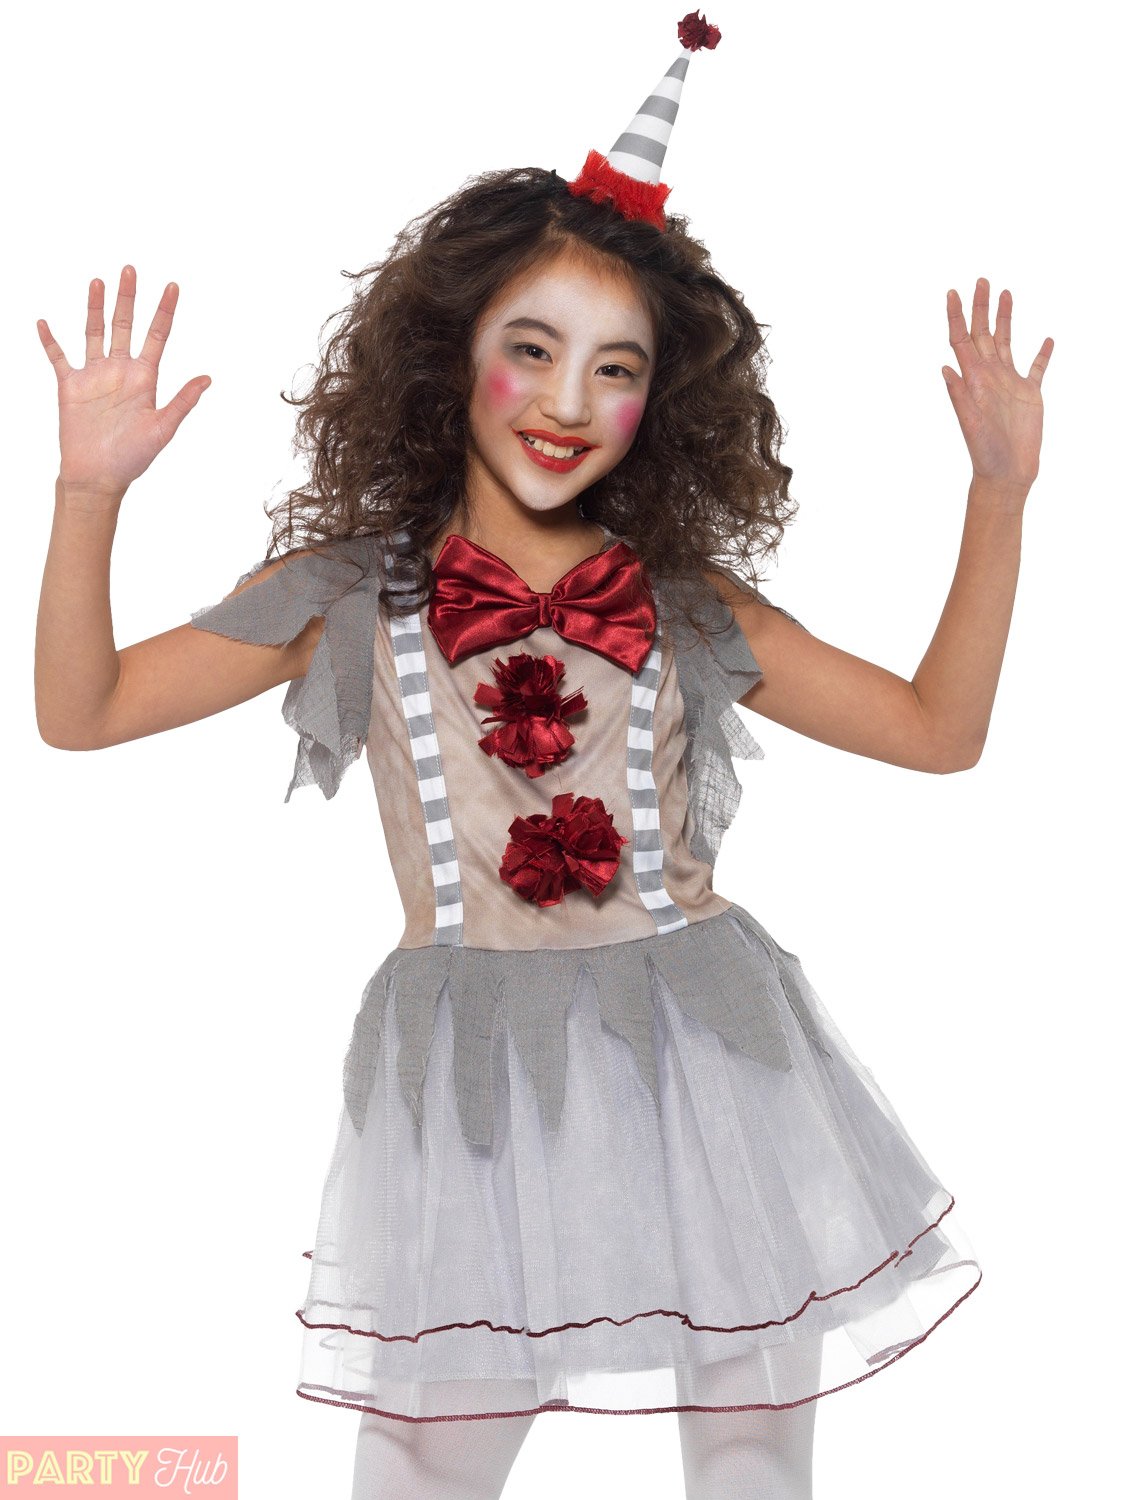 childs vintage clown costume boy girl it scary halloween horror